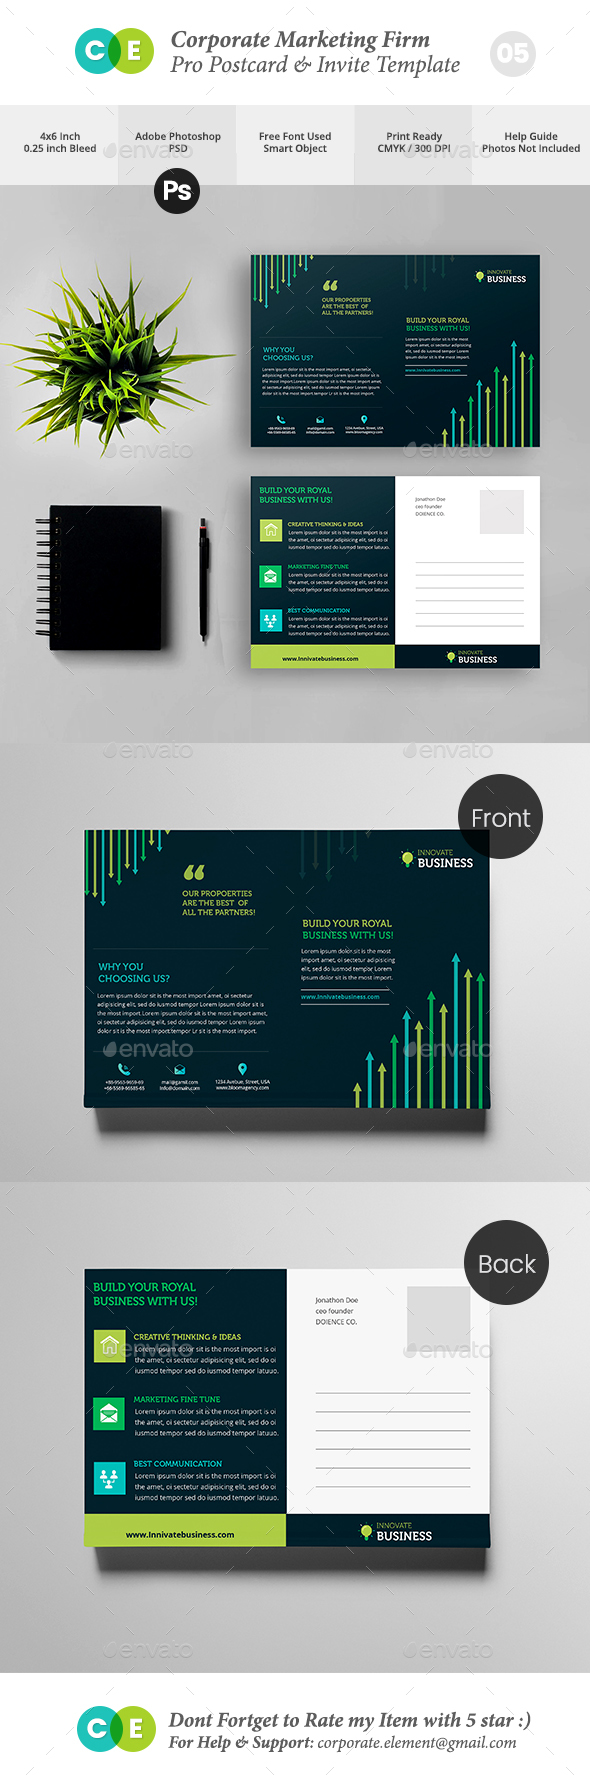 Corporate Marketing Firm Pro Postcard Invite  V05 - Cards & Invites Print Templates